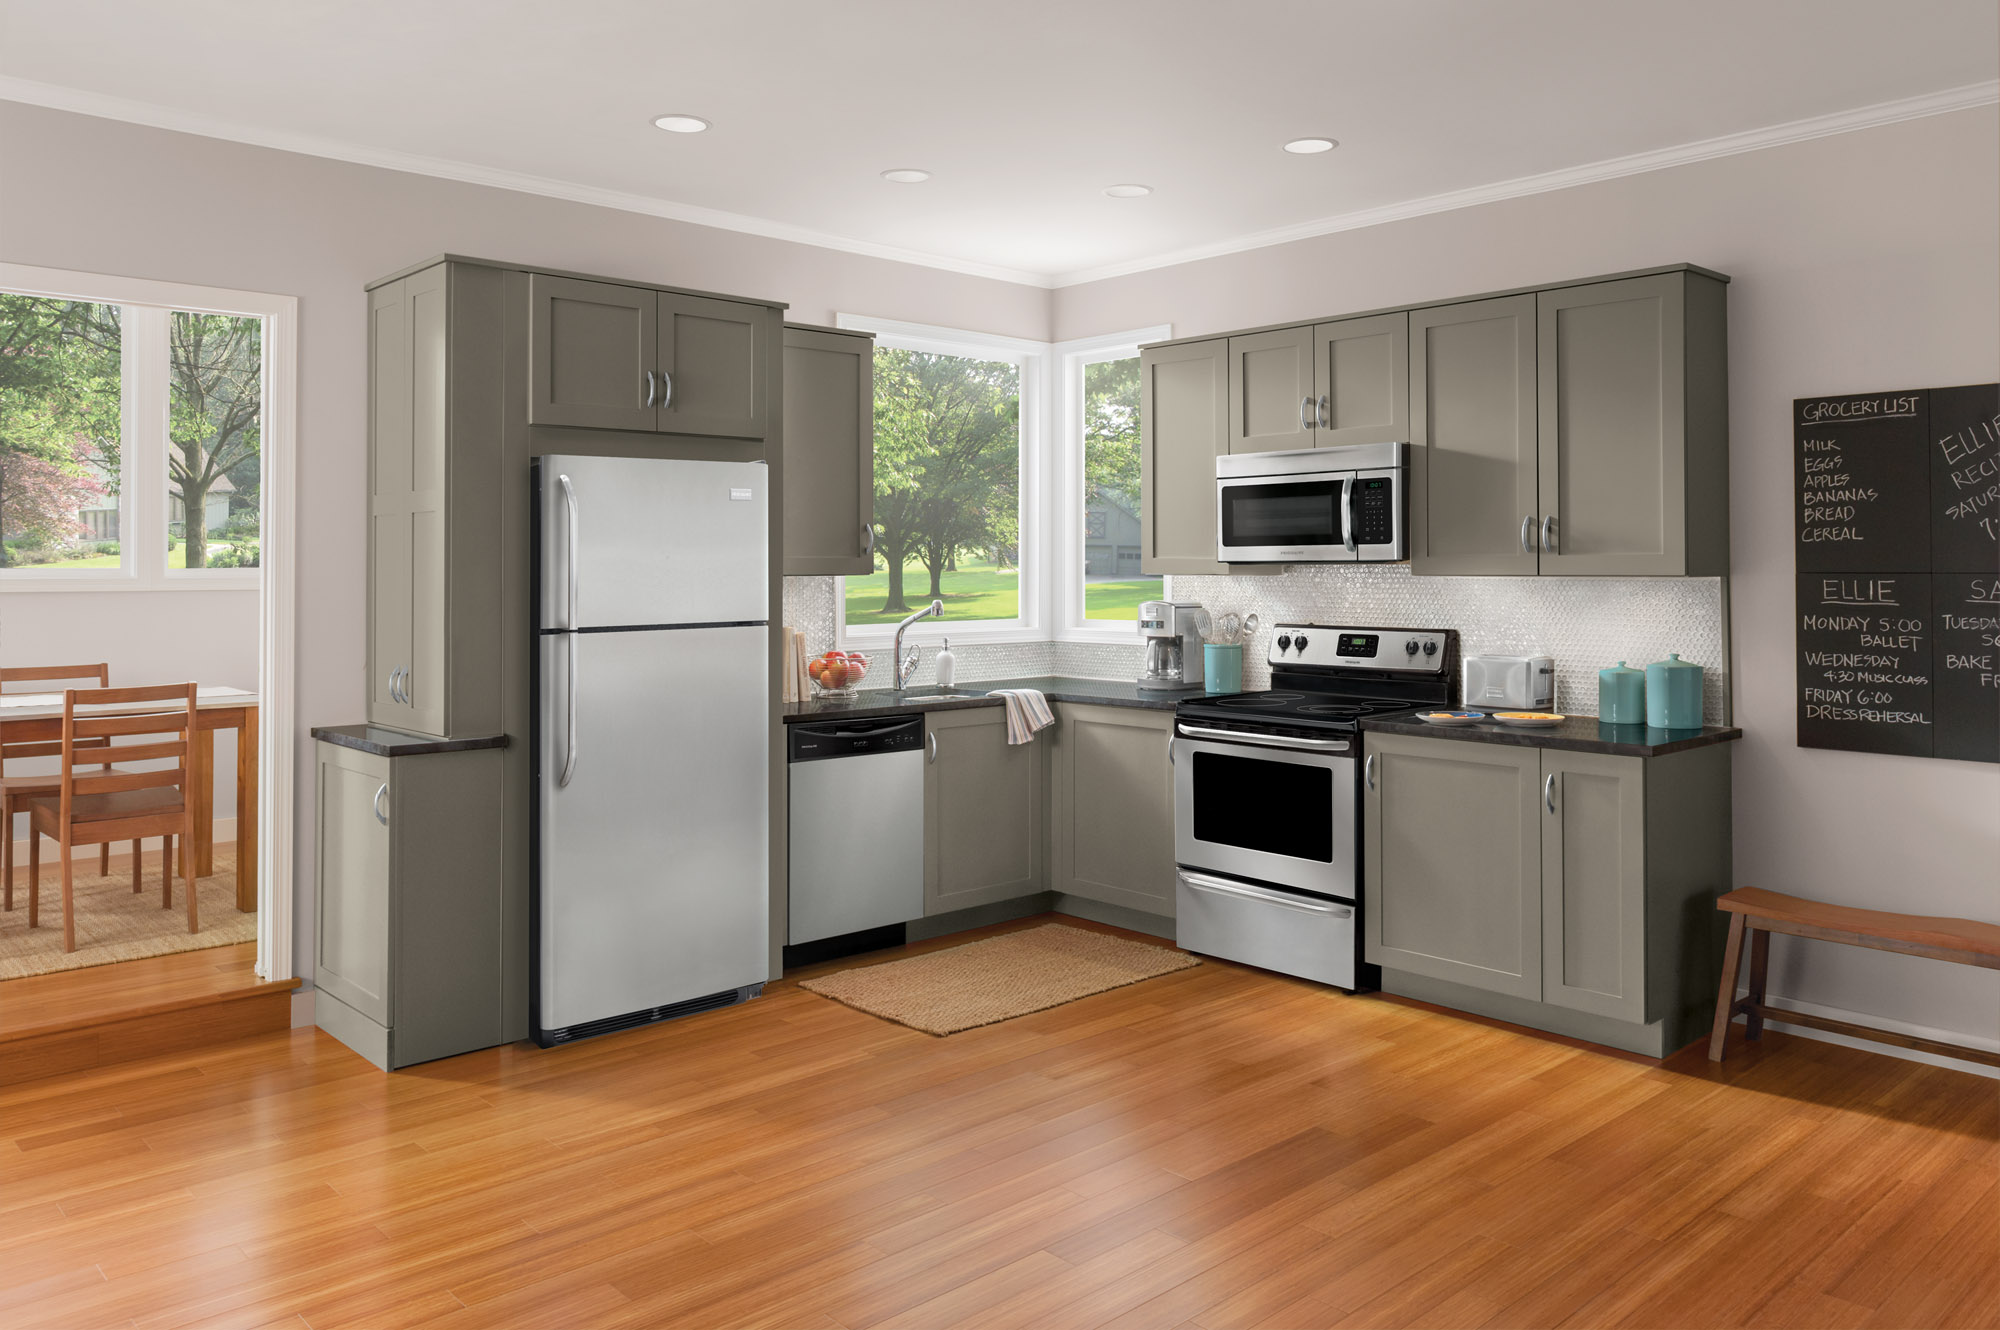 Kitchen Appliances Kitchen Appliance Package Deals